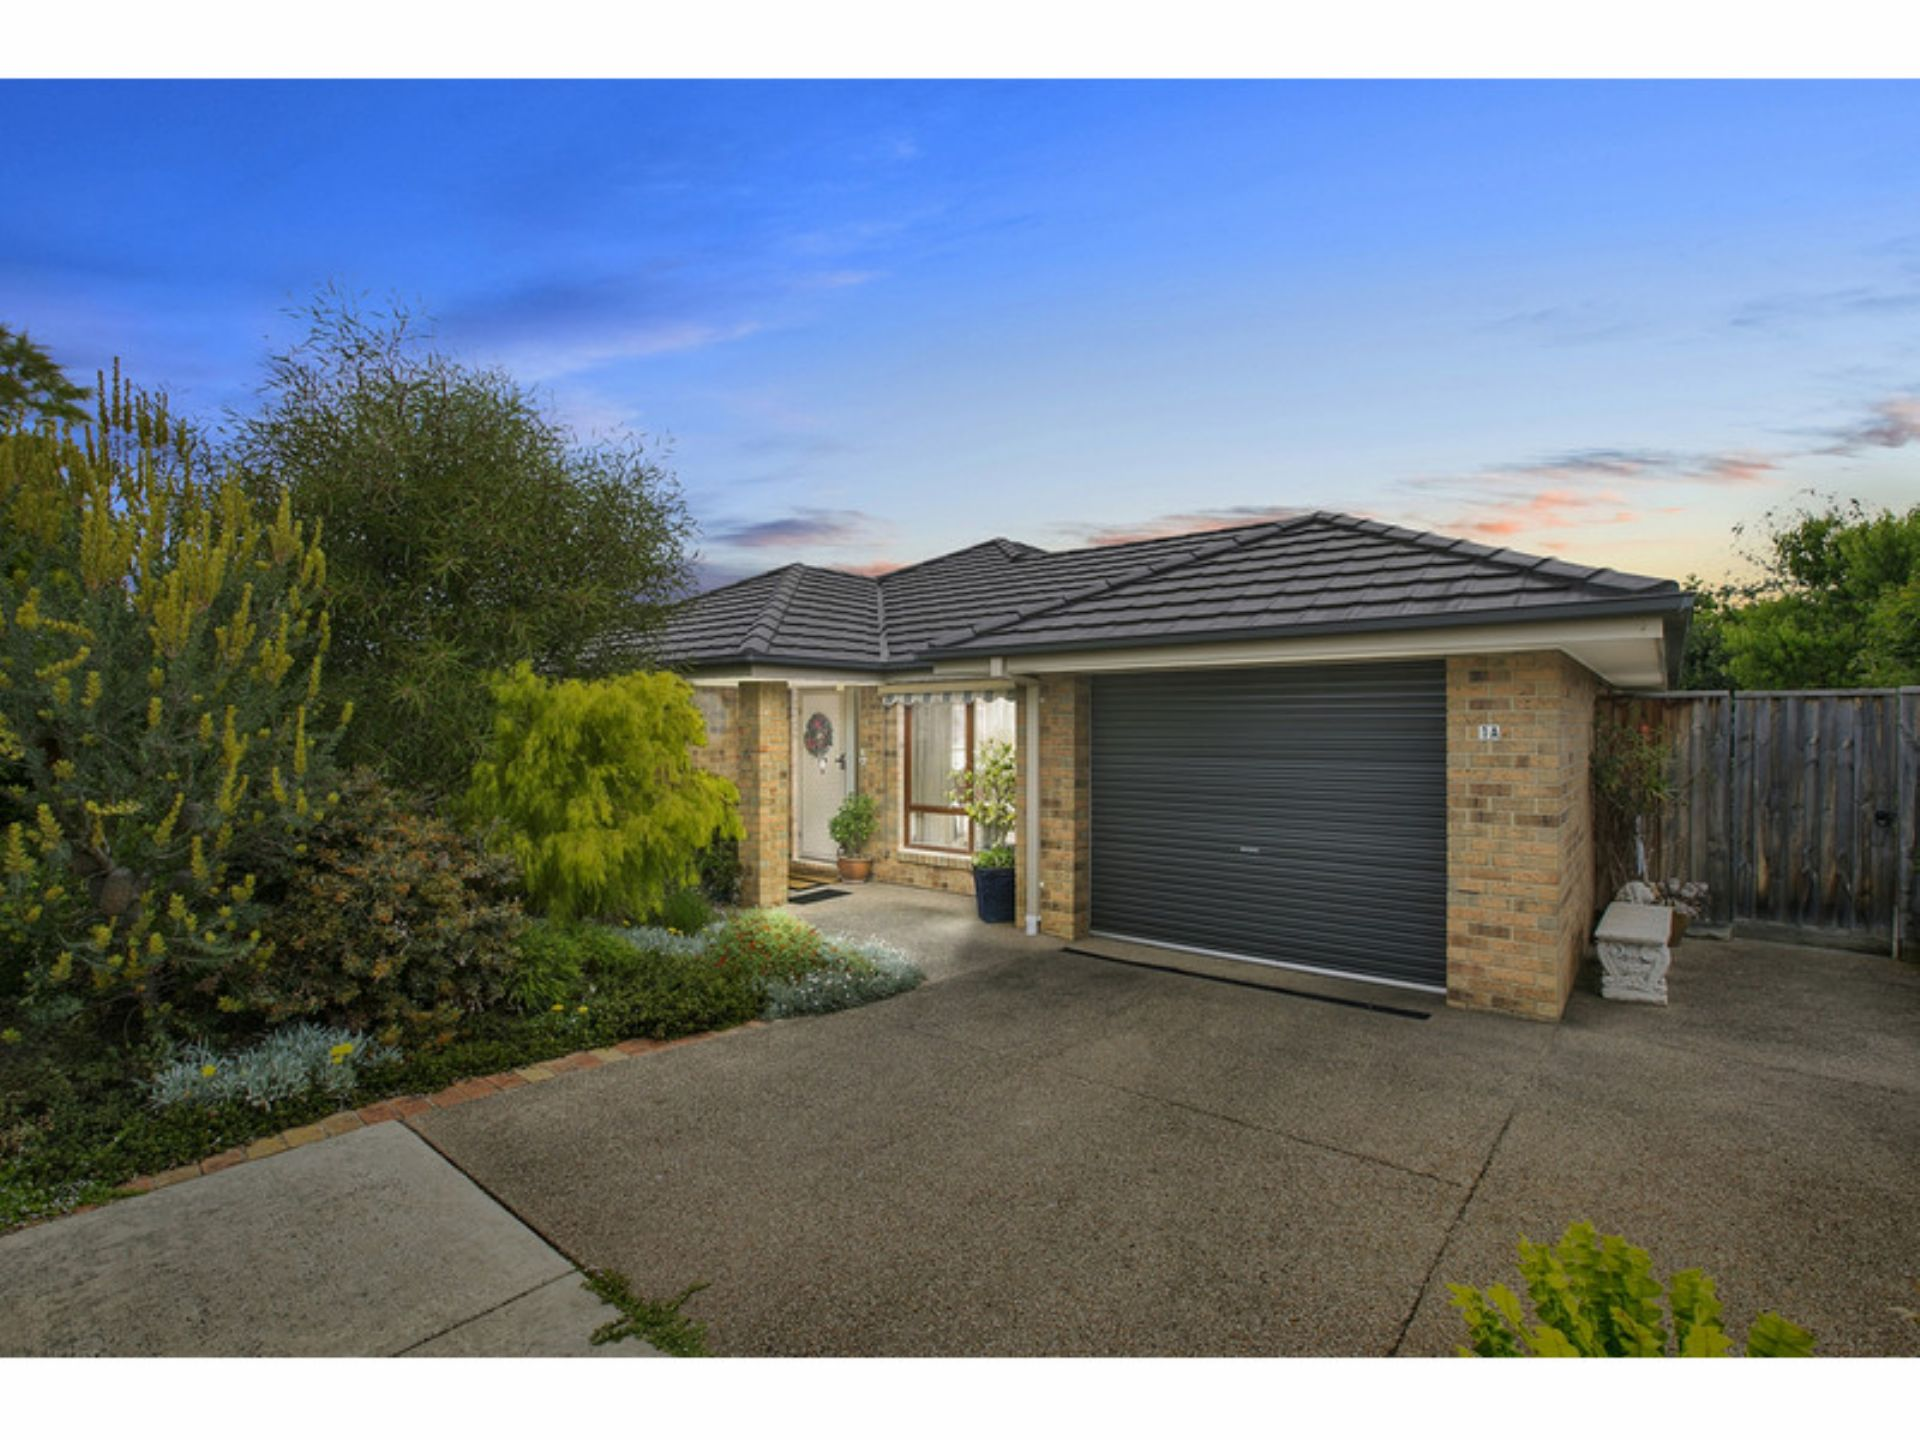 1a Fiona Court, MOUNT MARTHA, VIC, 3934 - Image